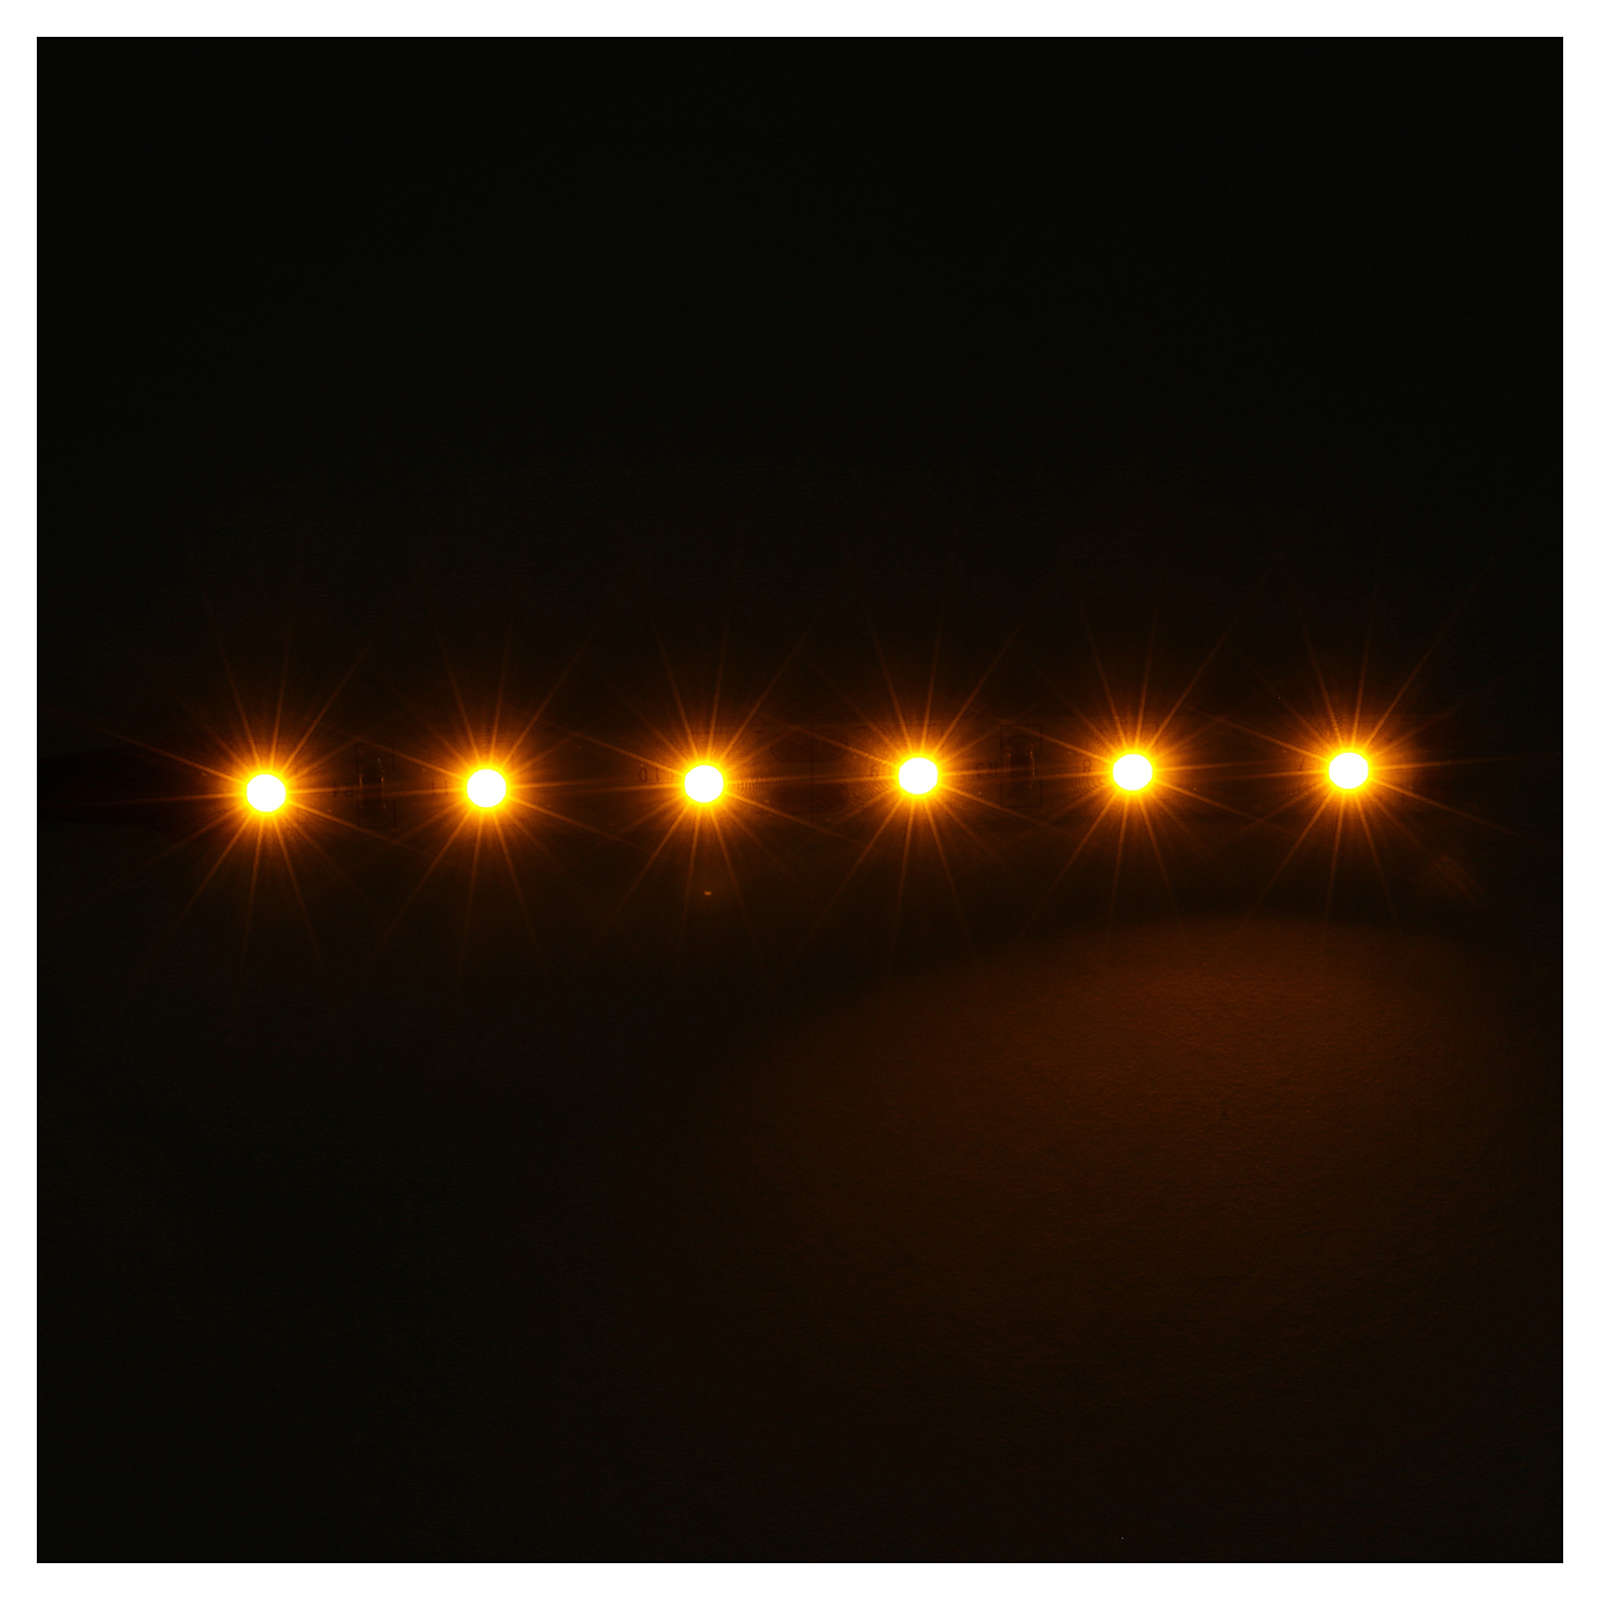 Led a strisce a 6 led cm 0,8x8 cm gialla per Frisalight 4